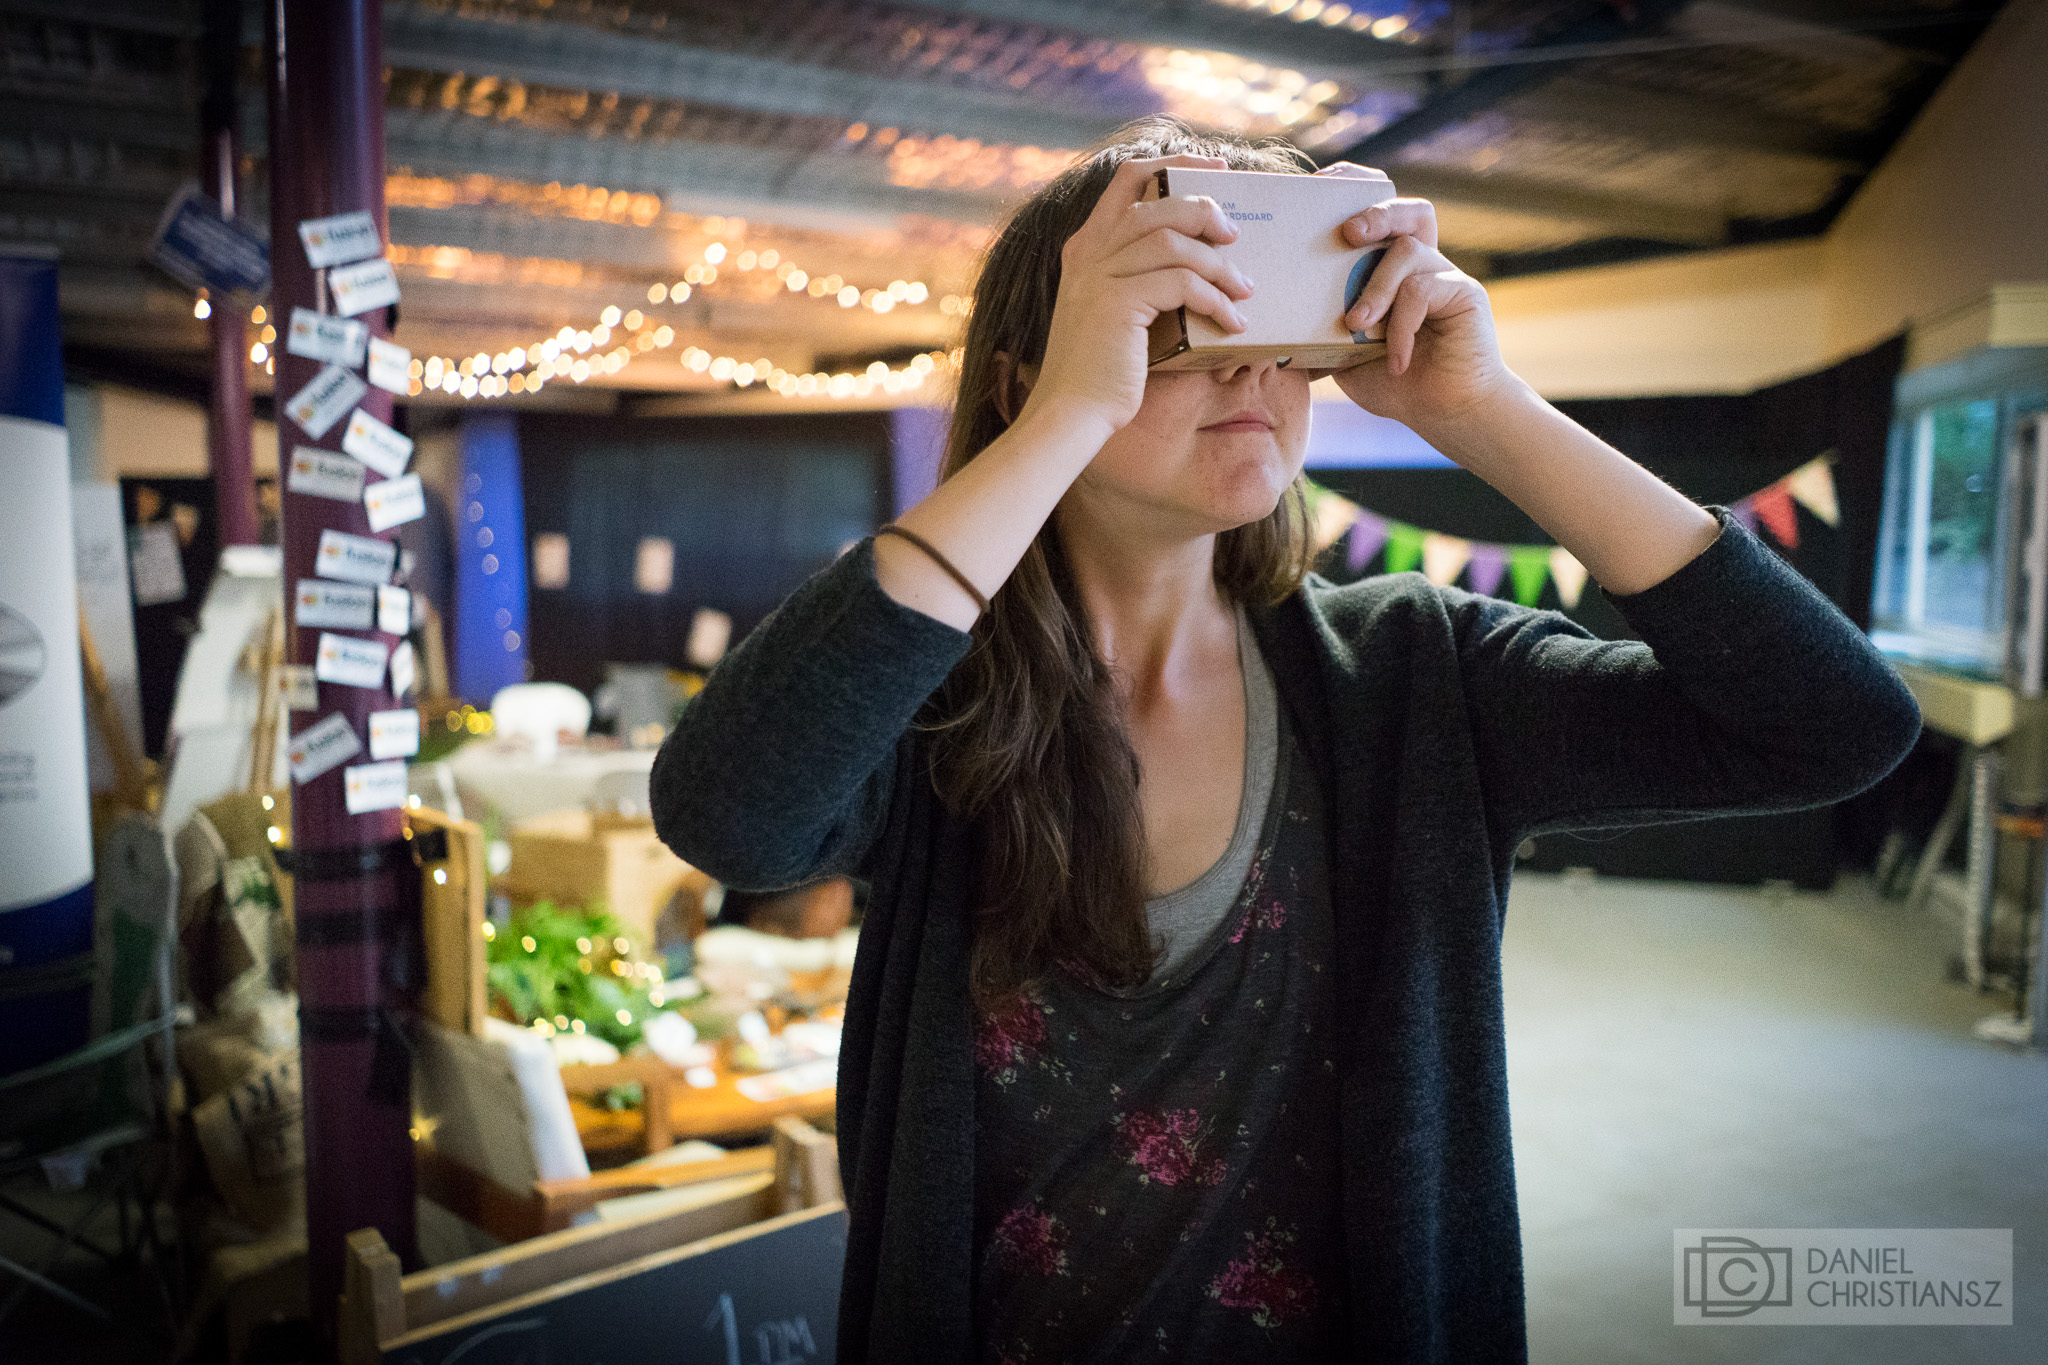 Woman with Google Cardboard Virtual Reality Headset in Melbourne